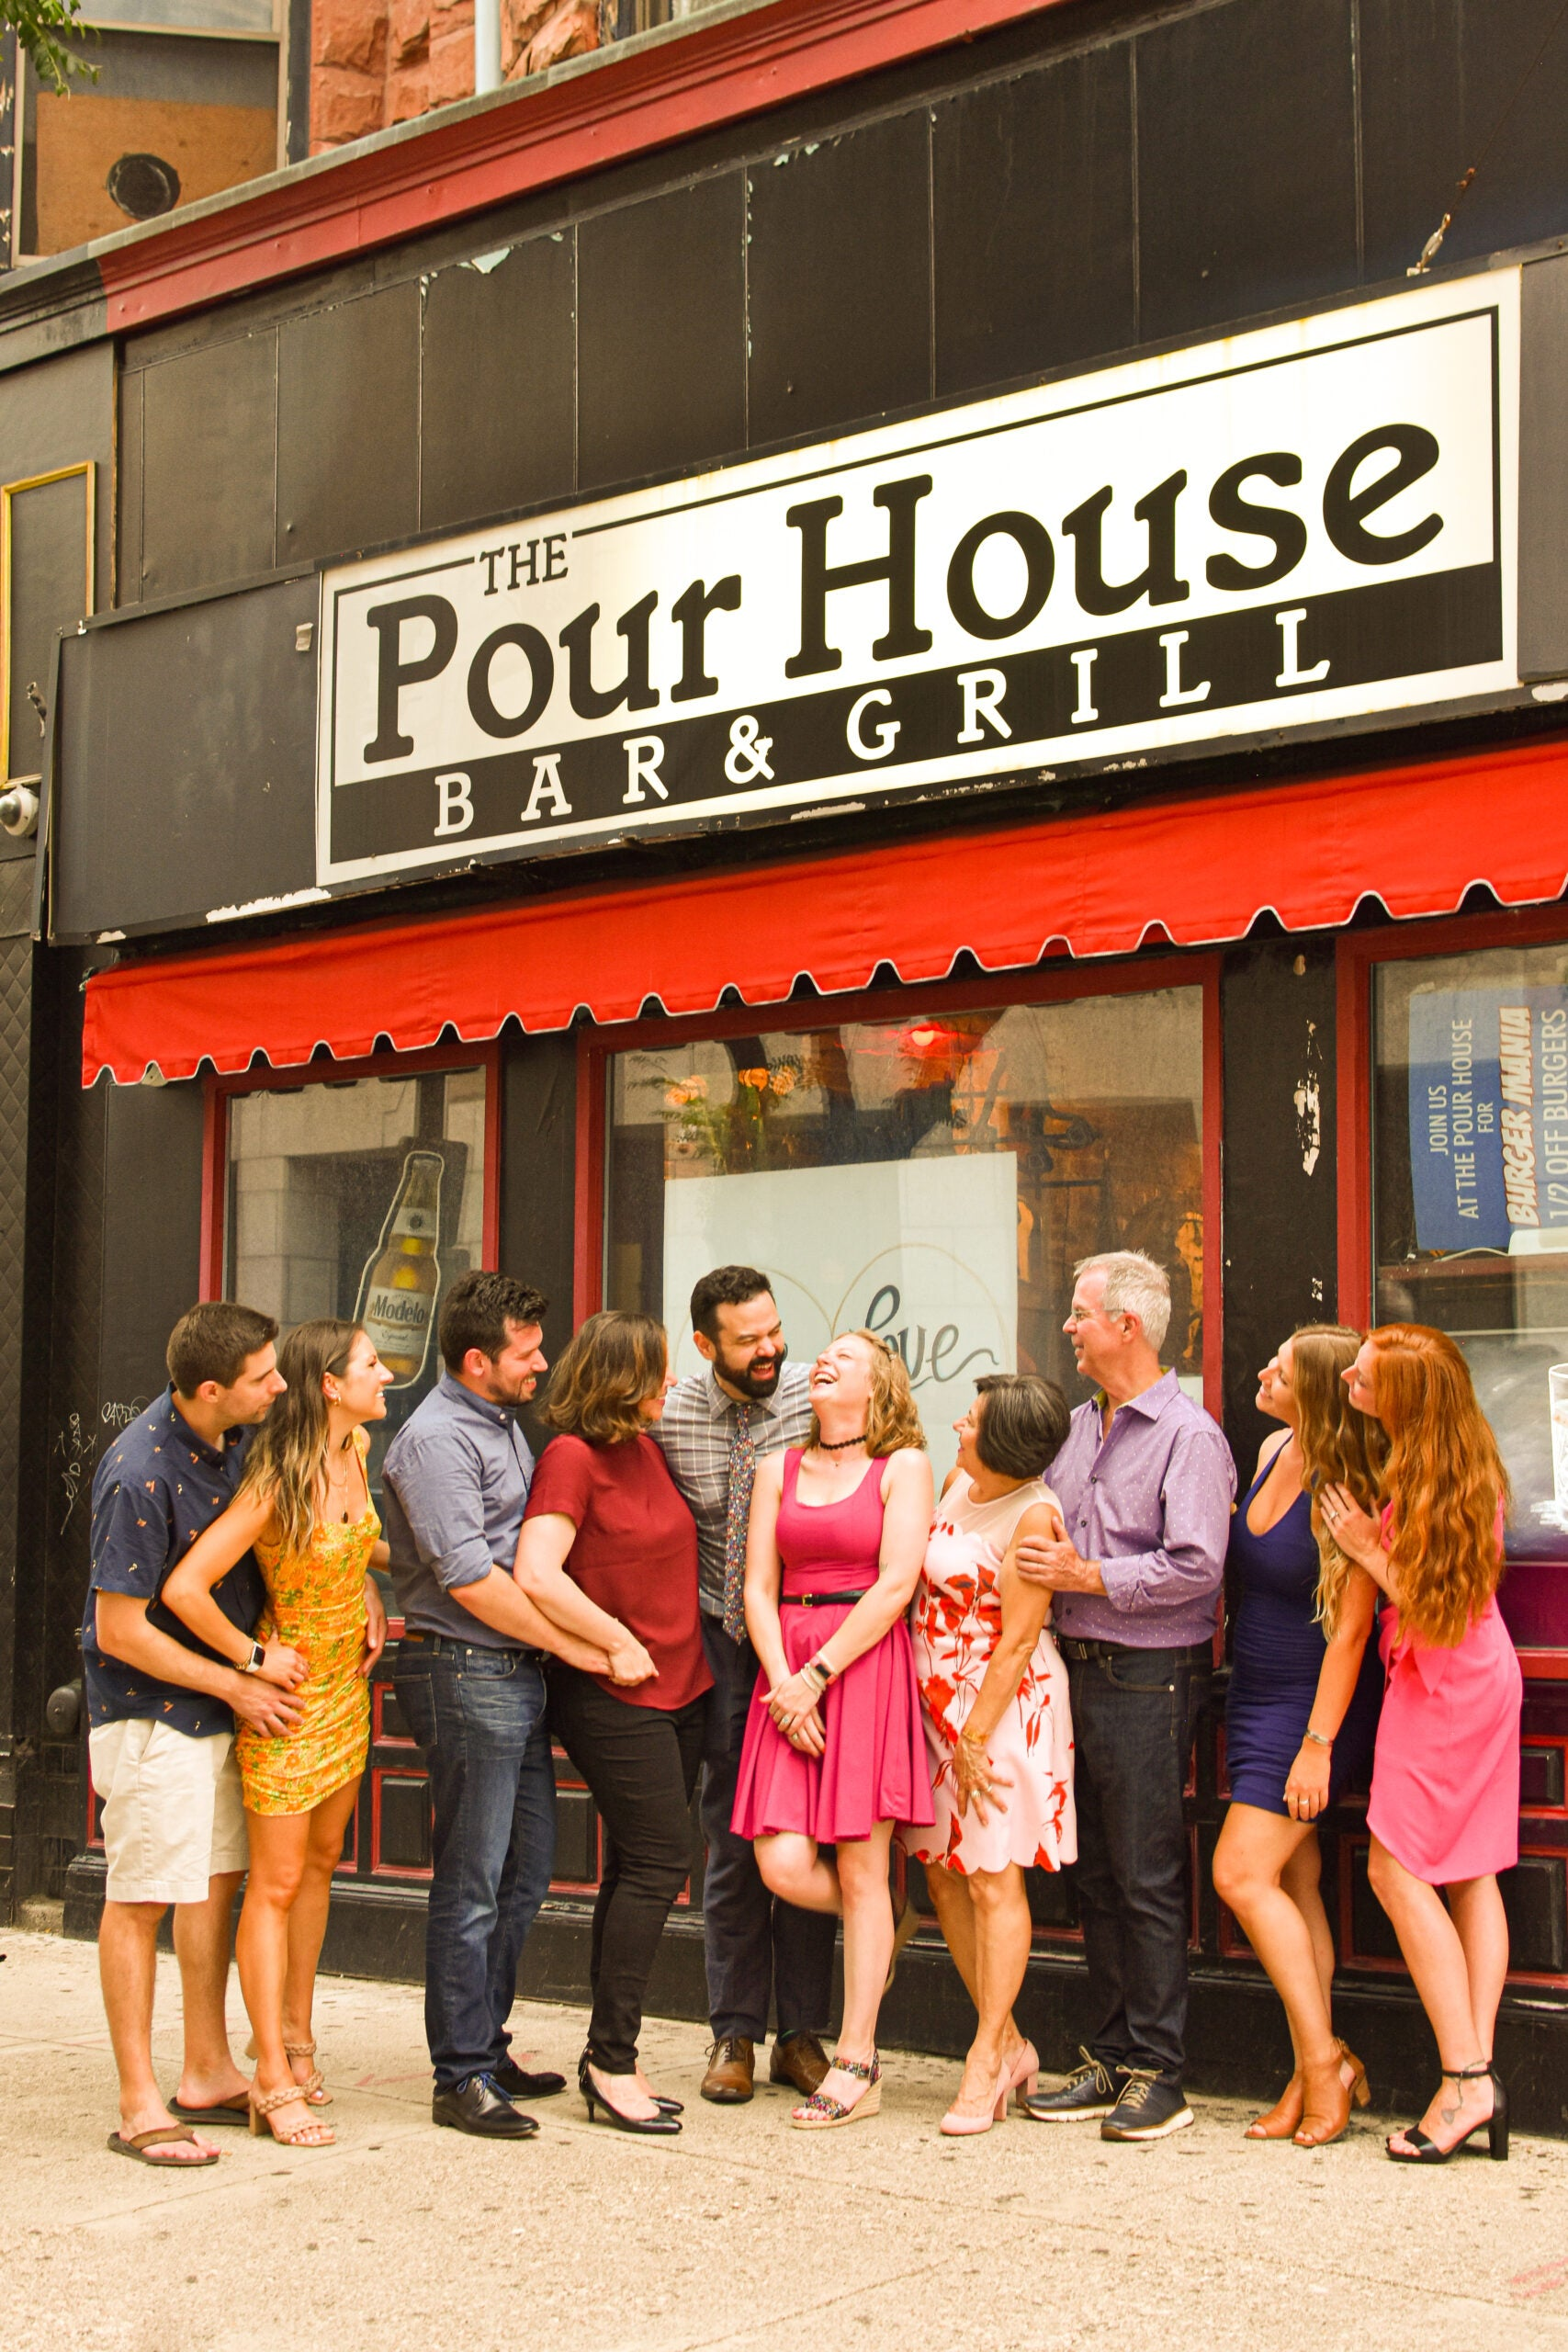 Matt Champlin and Christine Corning got engaged at Pour House